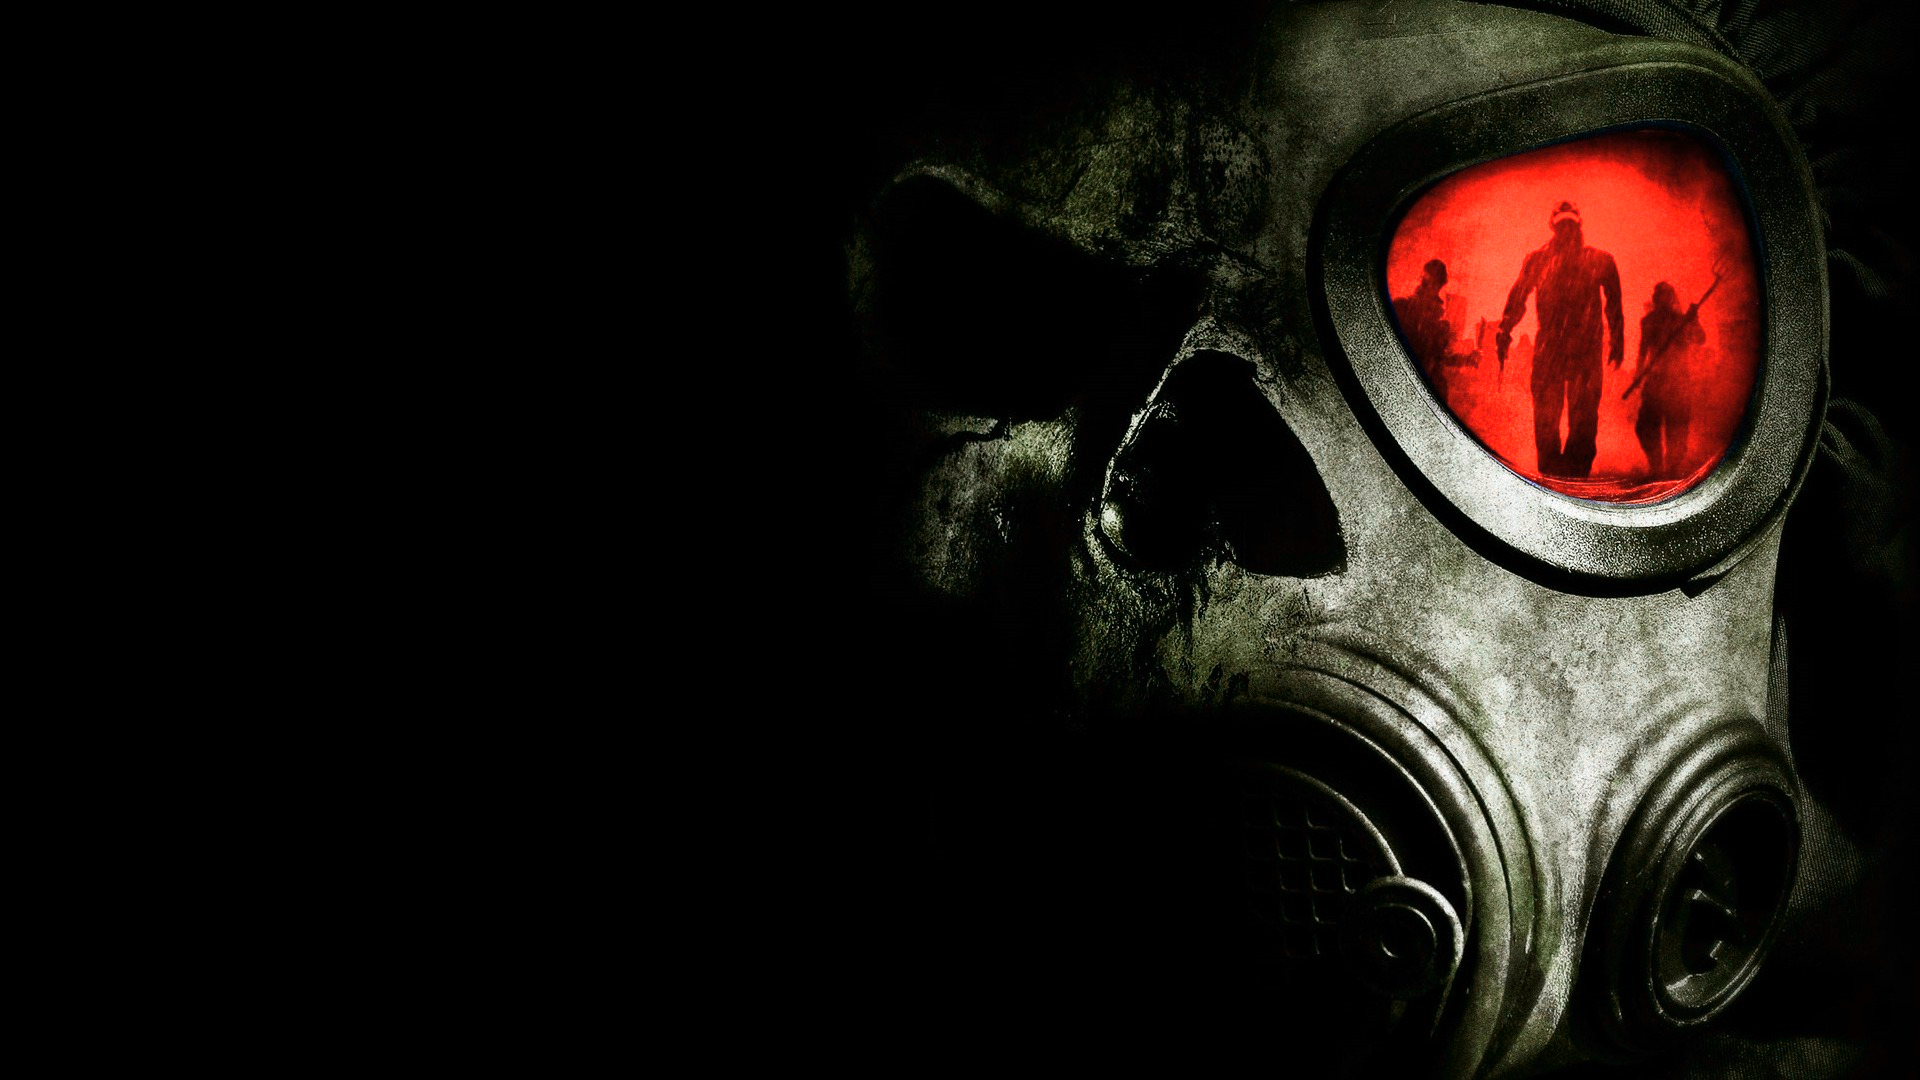 General 1920x1080 apocalyptic mask digital art black background